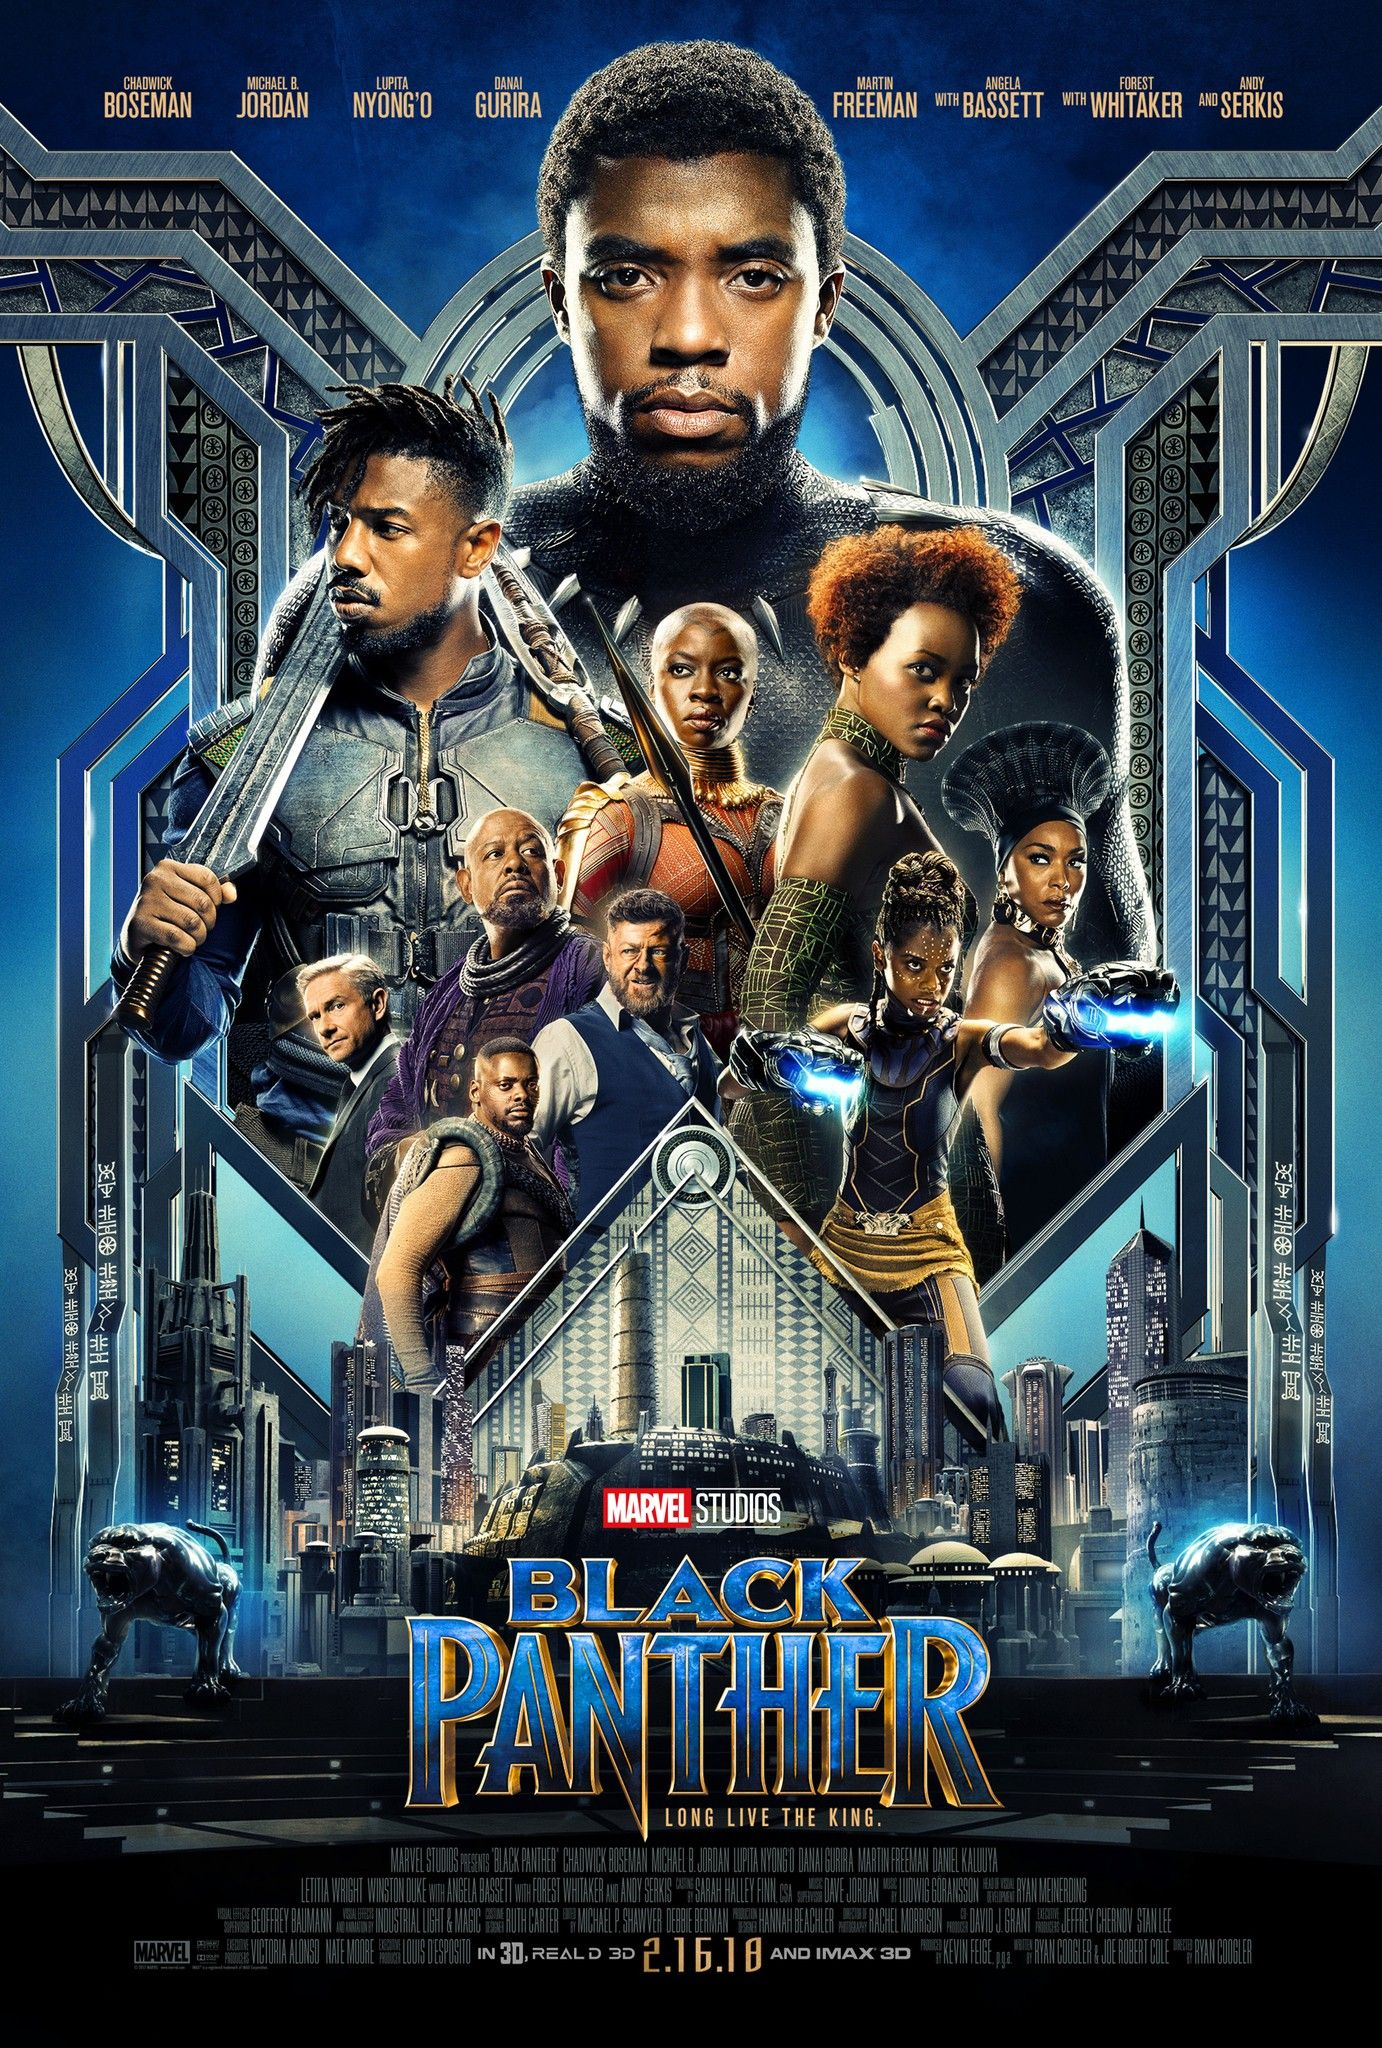 Pin By Mixalhs Onoyfrioy On My World In 2020 Marvel Movie Posters Black Panther Movie Poster Black Panther Marvel